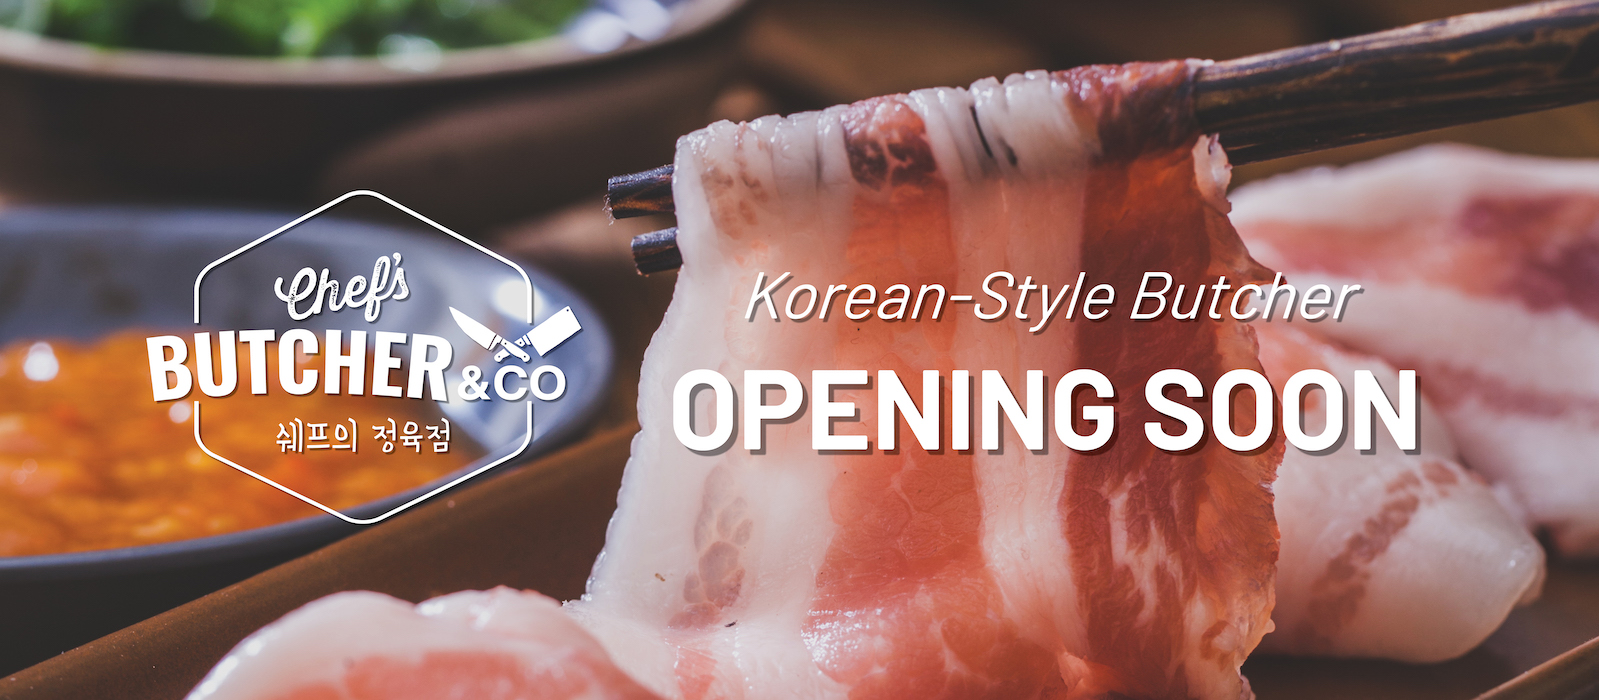 Chef's Butcher & Co_Opening Soon